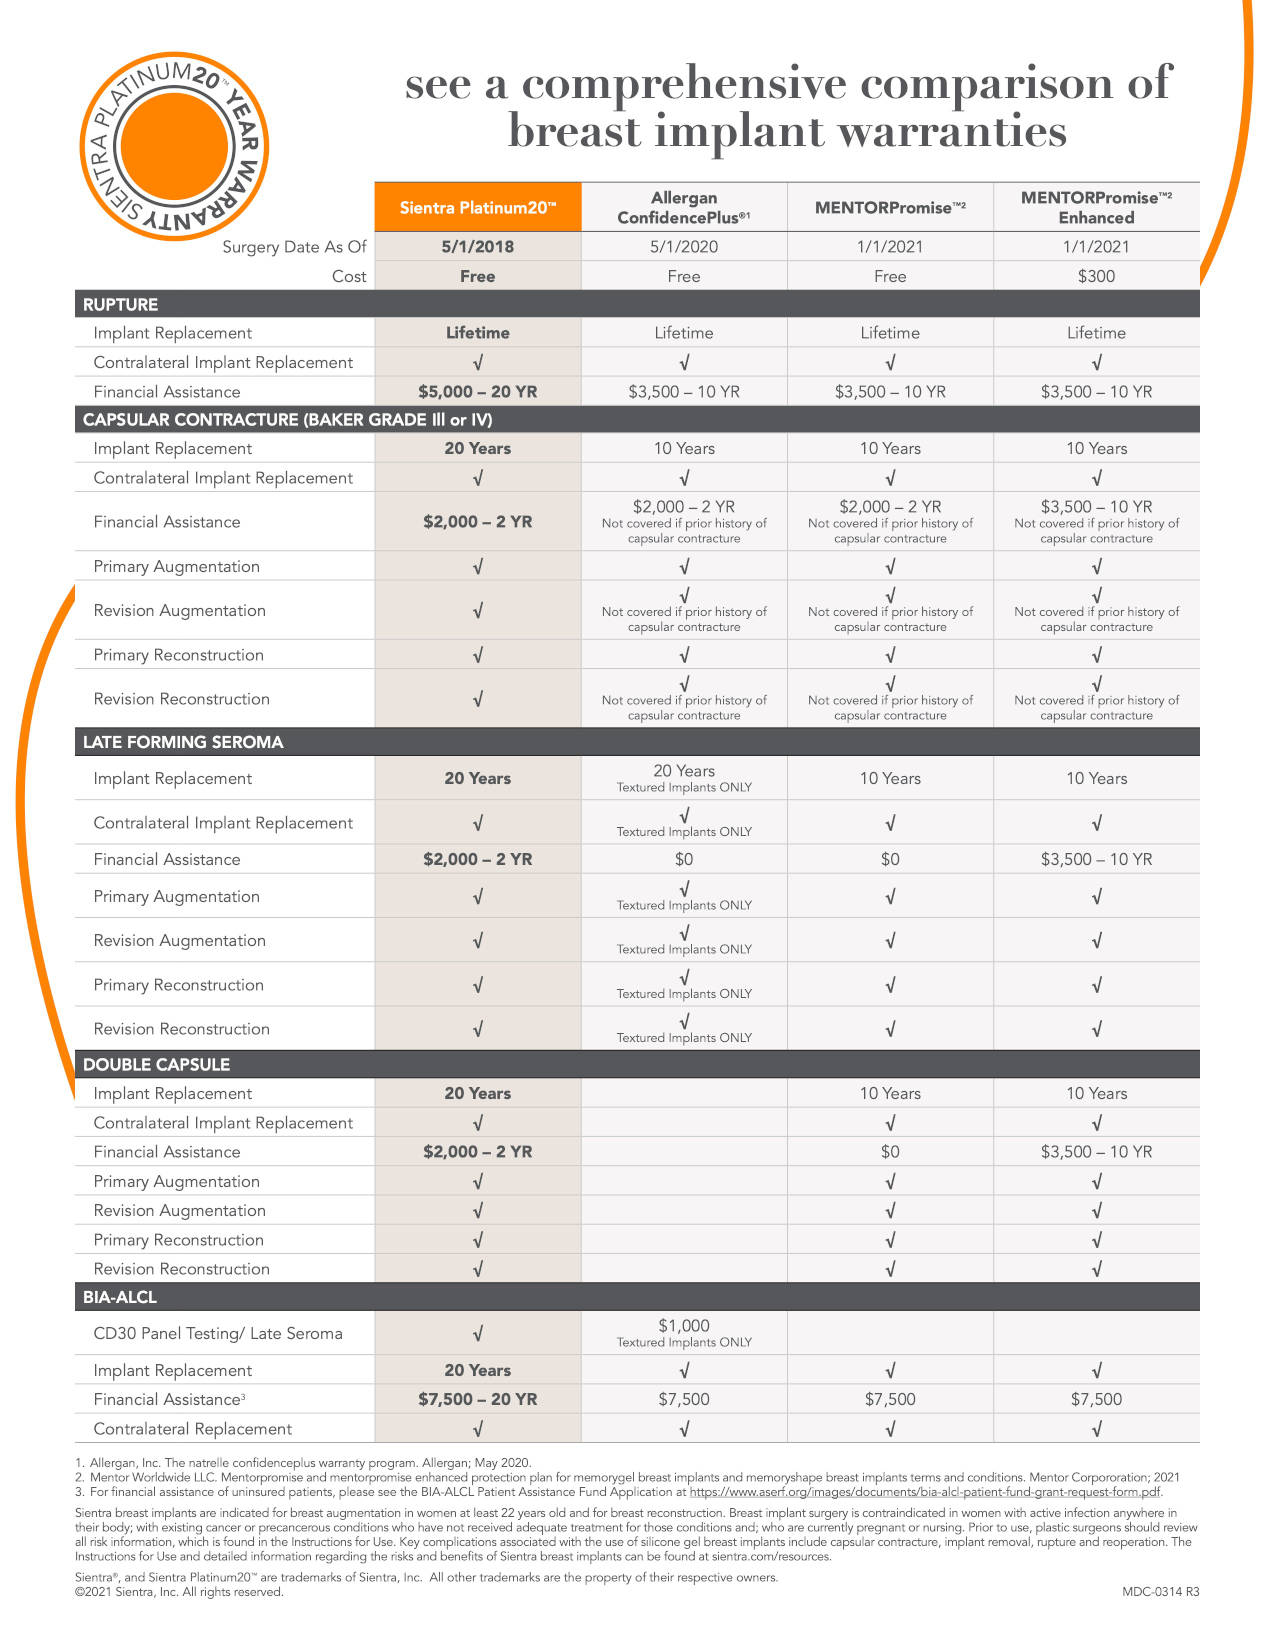 Sientra Platinum20 Warranty Comparison Chart